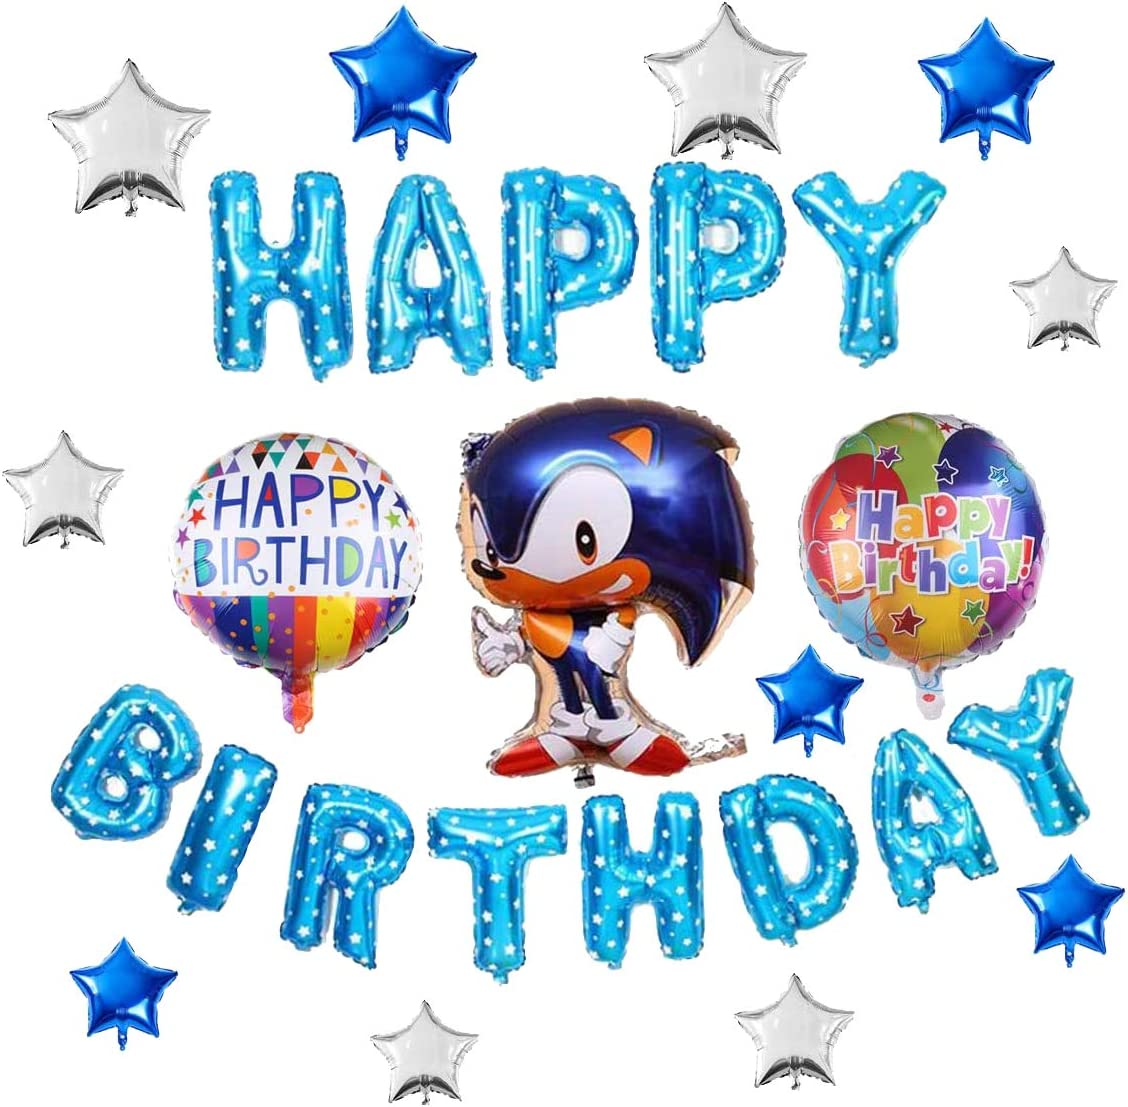 Amazon Com Sonic Birthday Party Supplies Set Happy Birthday Foil Mylar Balloon For Sonic The Hedgehog Theme Kids Birthday Party Decoration Toys Games